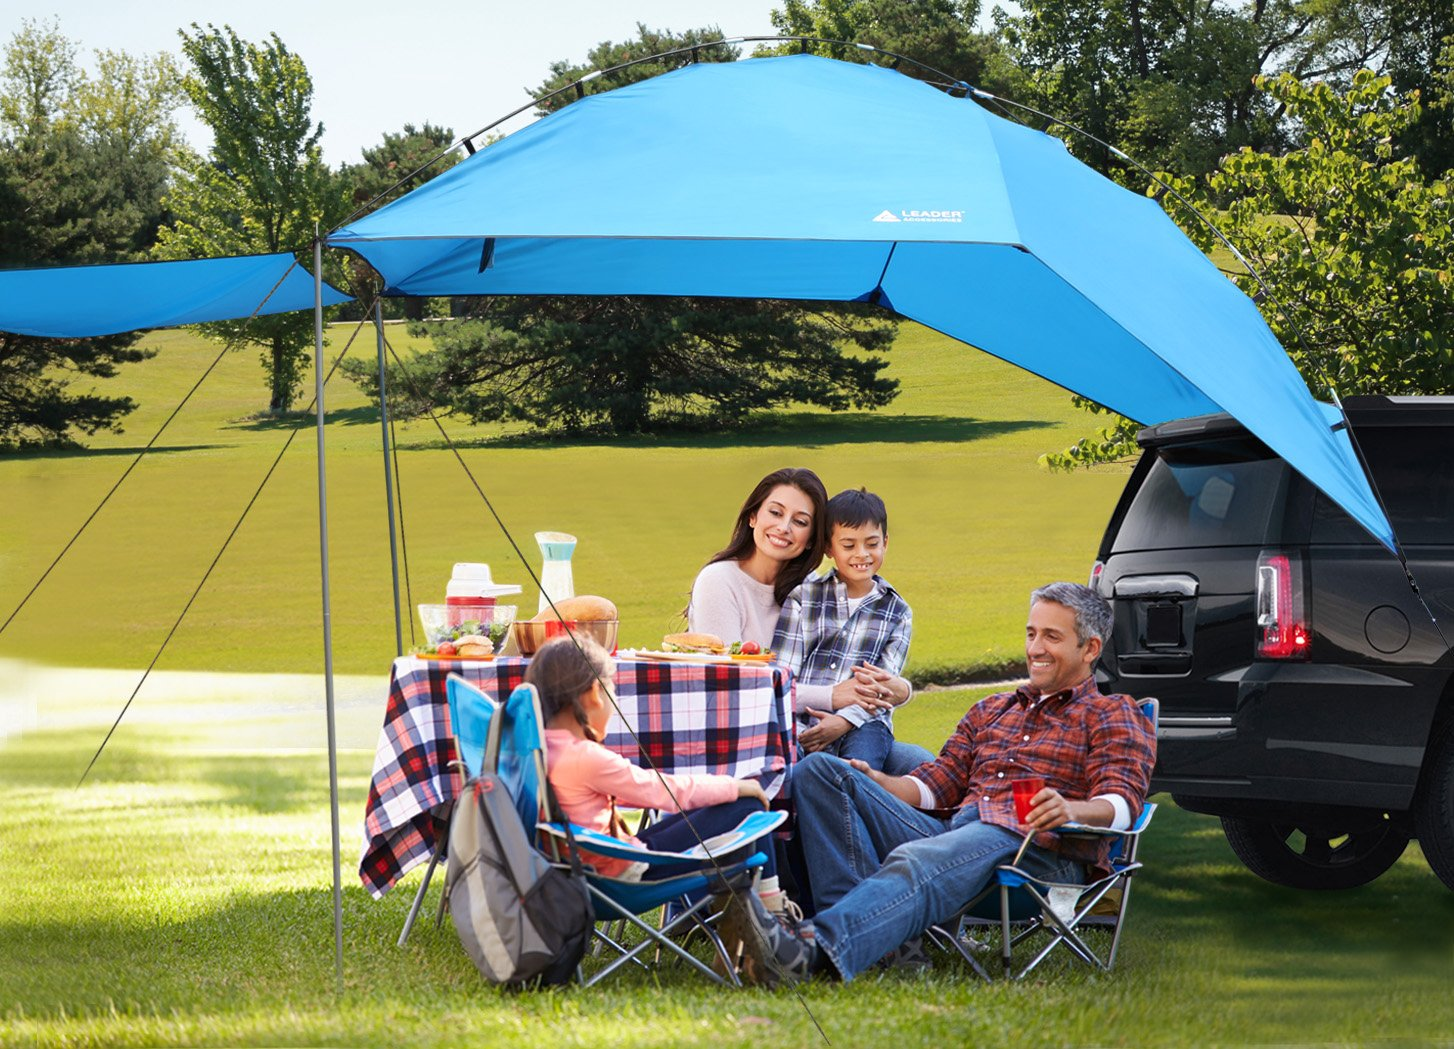 Leader Accessories Easy Set Up Camping SUV Tent/Awning/Canopy/ Sun Shelter Tailgate Tent Beach Tent Suitable For SUV Mini Van Campers RVs Waterproof With Adjustable Sunwall (78.7''x59'') by Leader Accessories (Image #2)